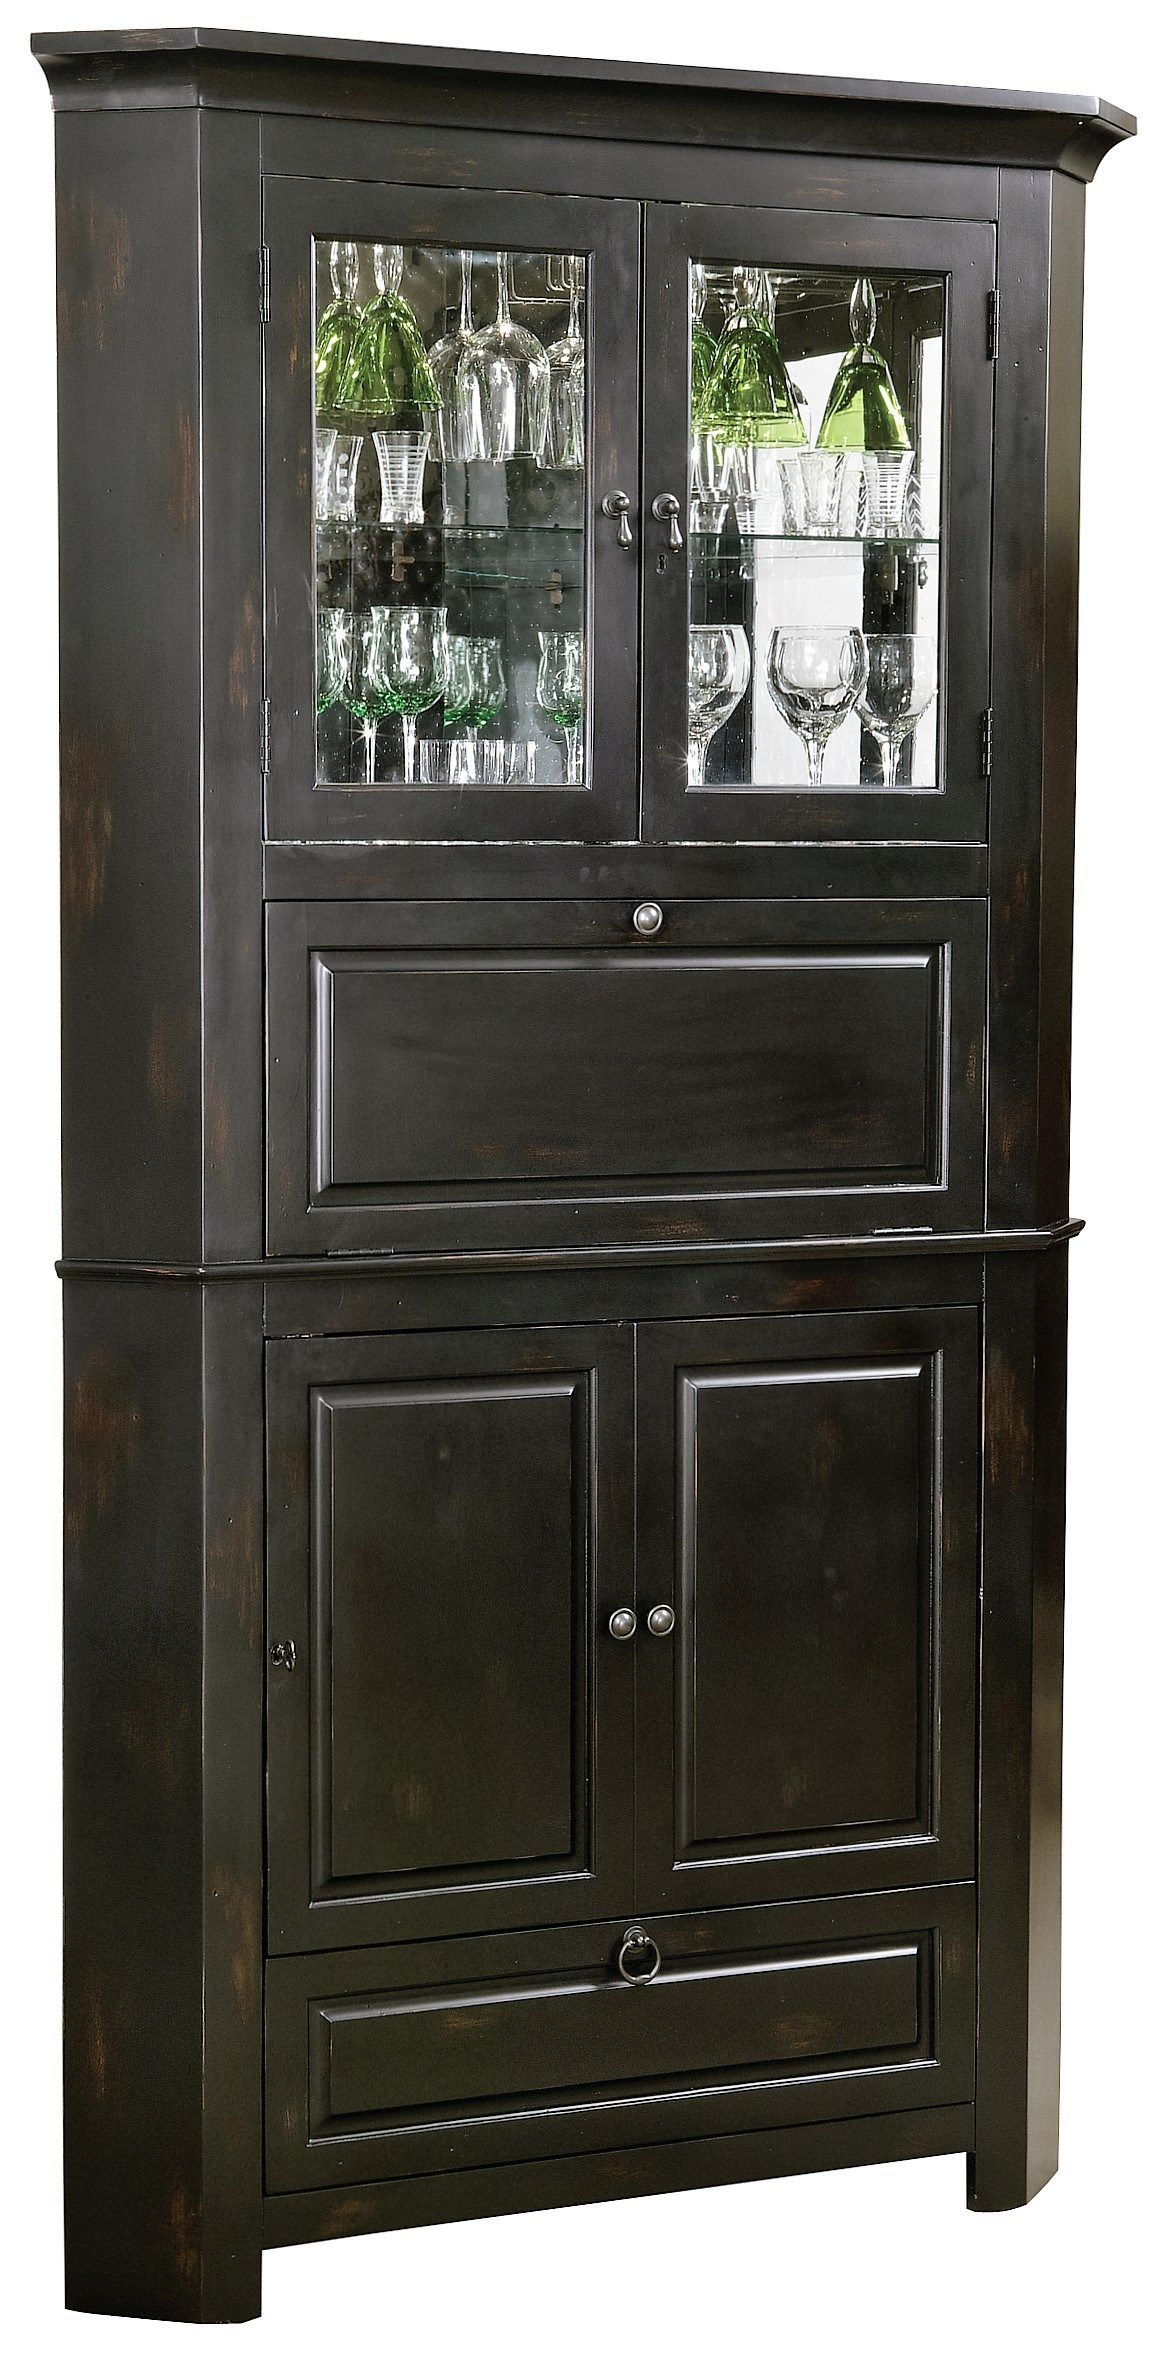 Rustic corner bar cabinet distressed wine amp bar cabinet my future kitchen pinterest wine